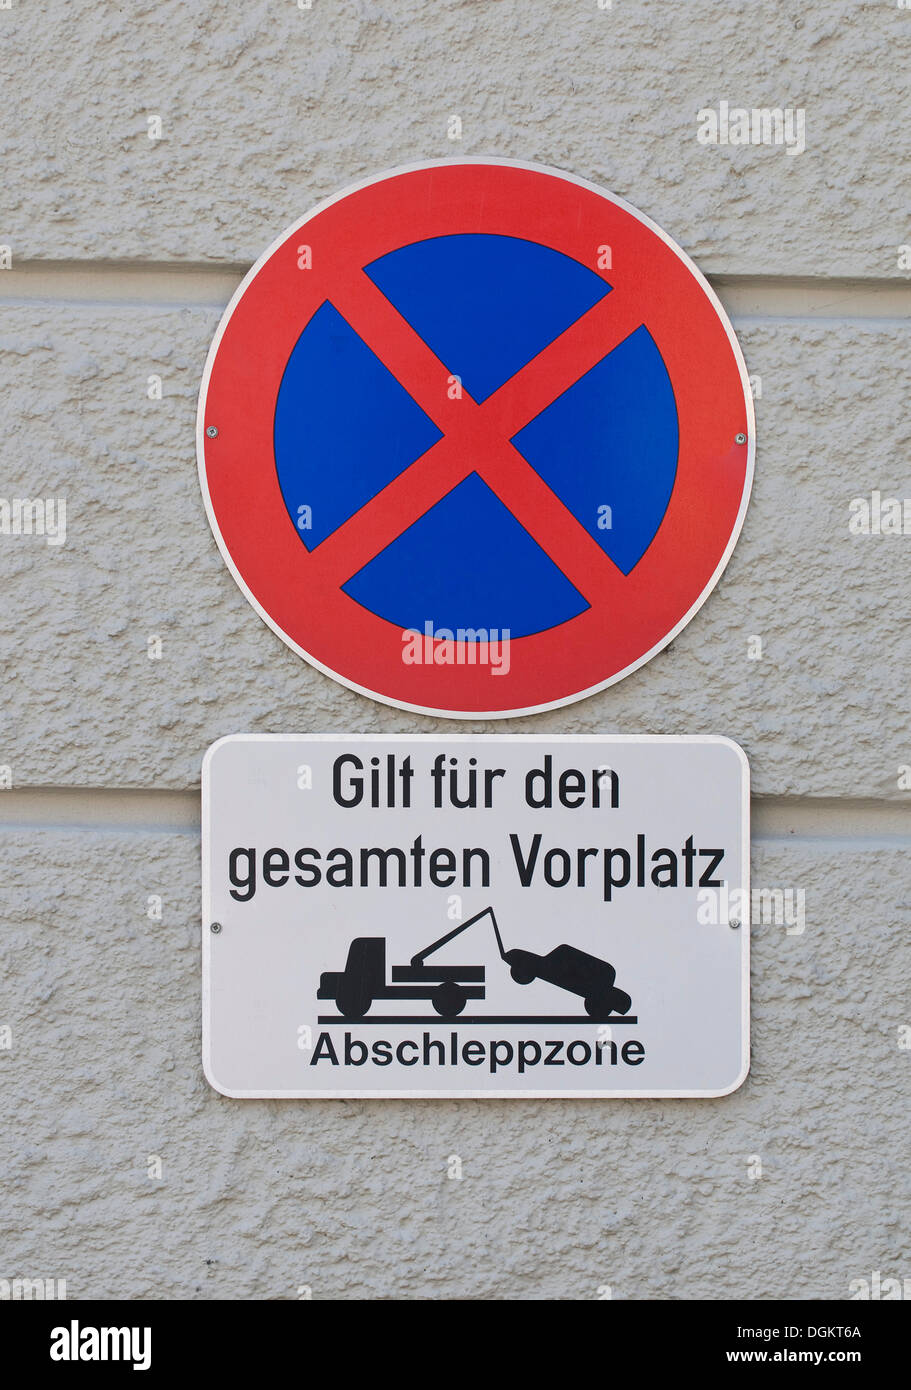 Prohibition sign, absolute parking prohibition applies to the entire square, tow-away zone with a pictogram of a - Stock Image